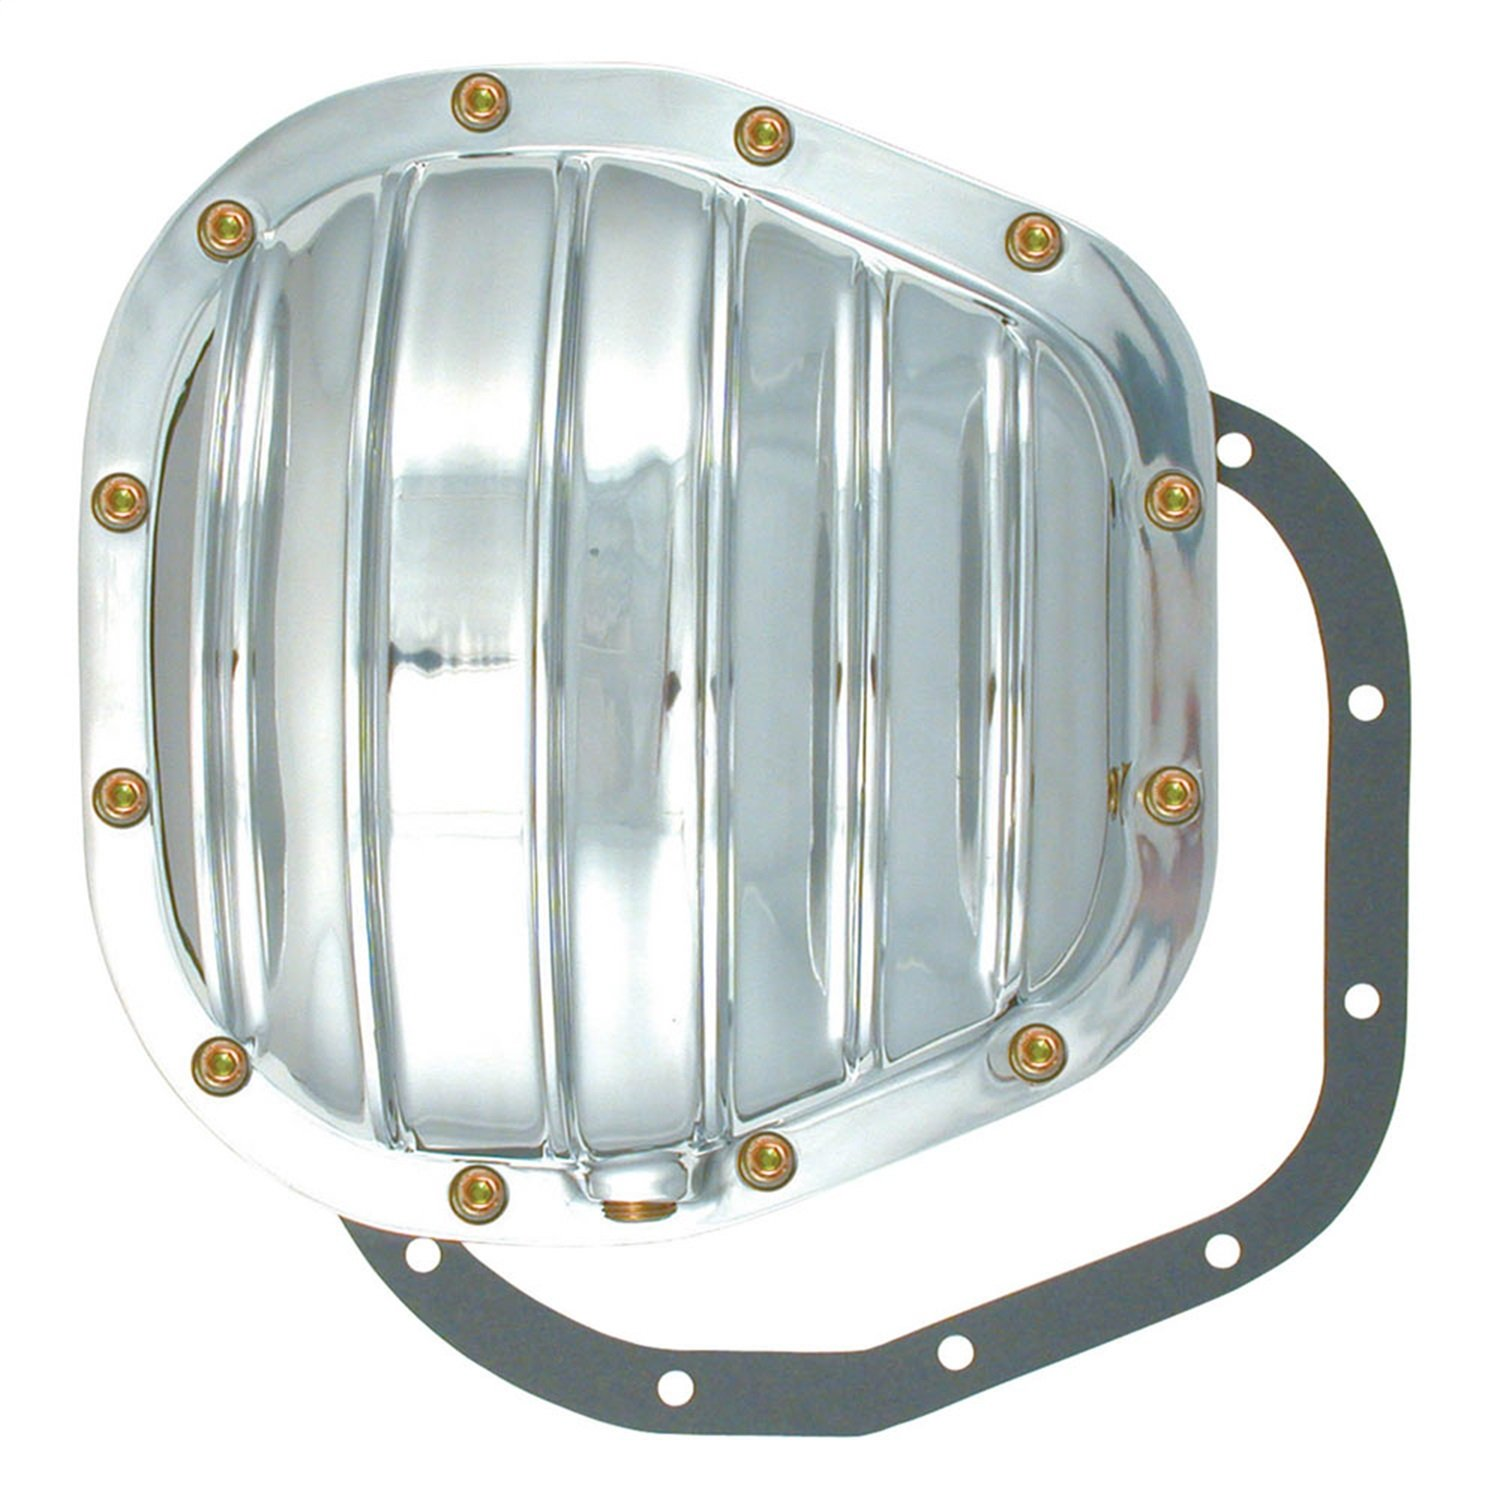 Spectre Performance 60849 12-Bolt Aluminum Differential Cover for Ford Truck